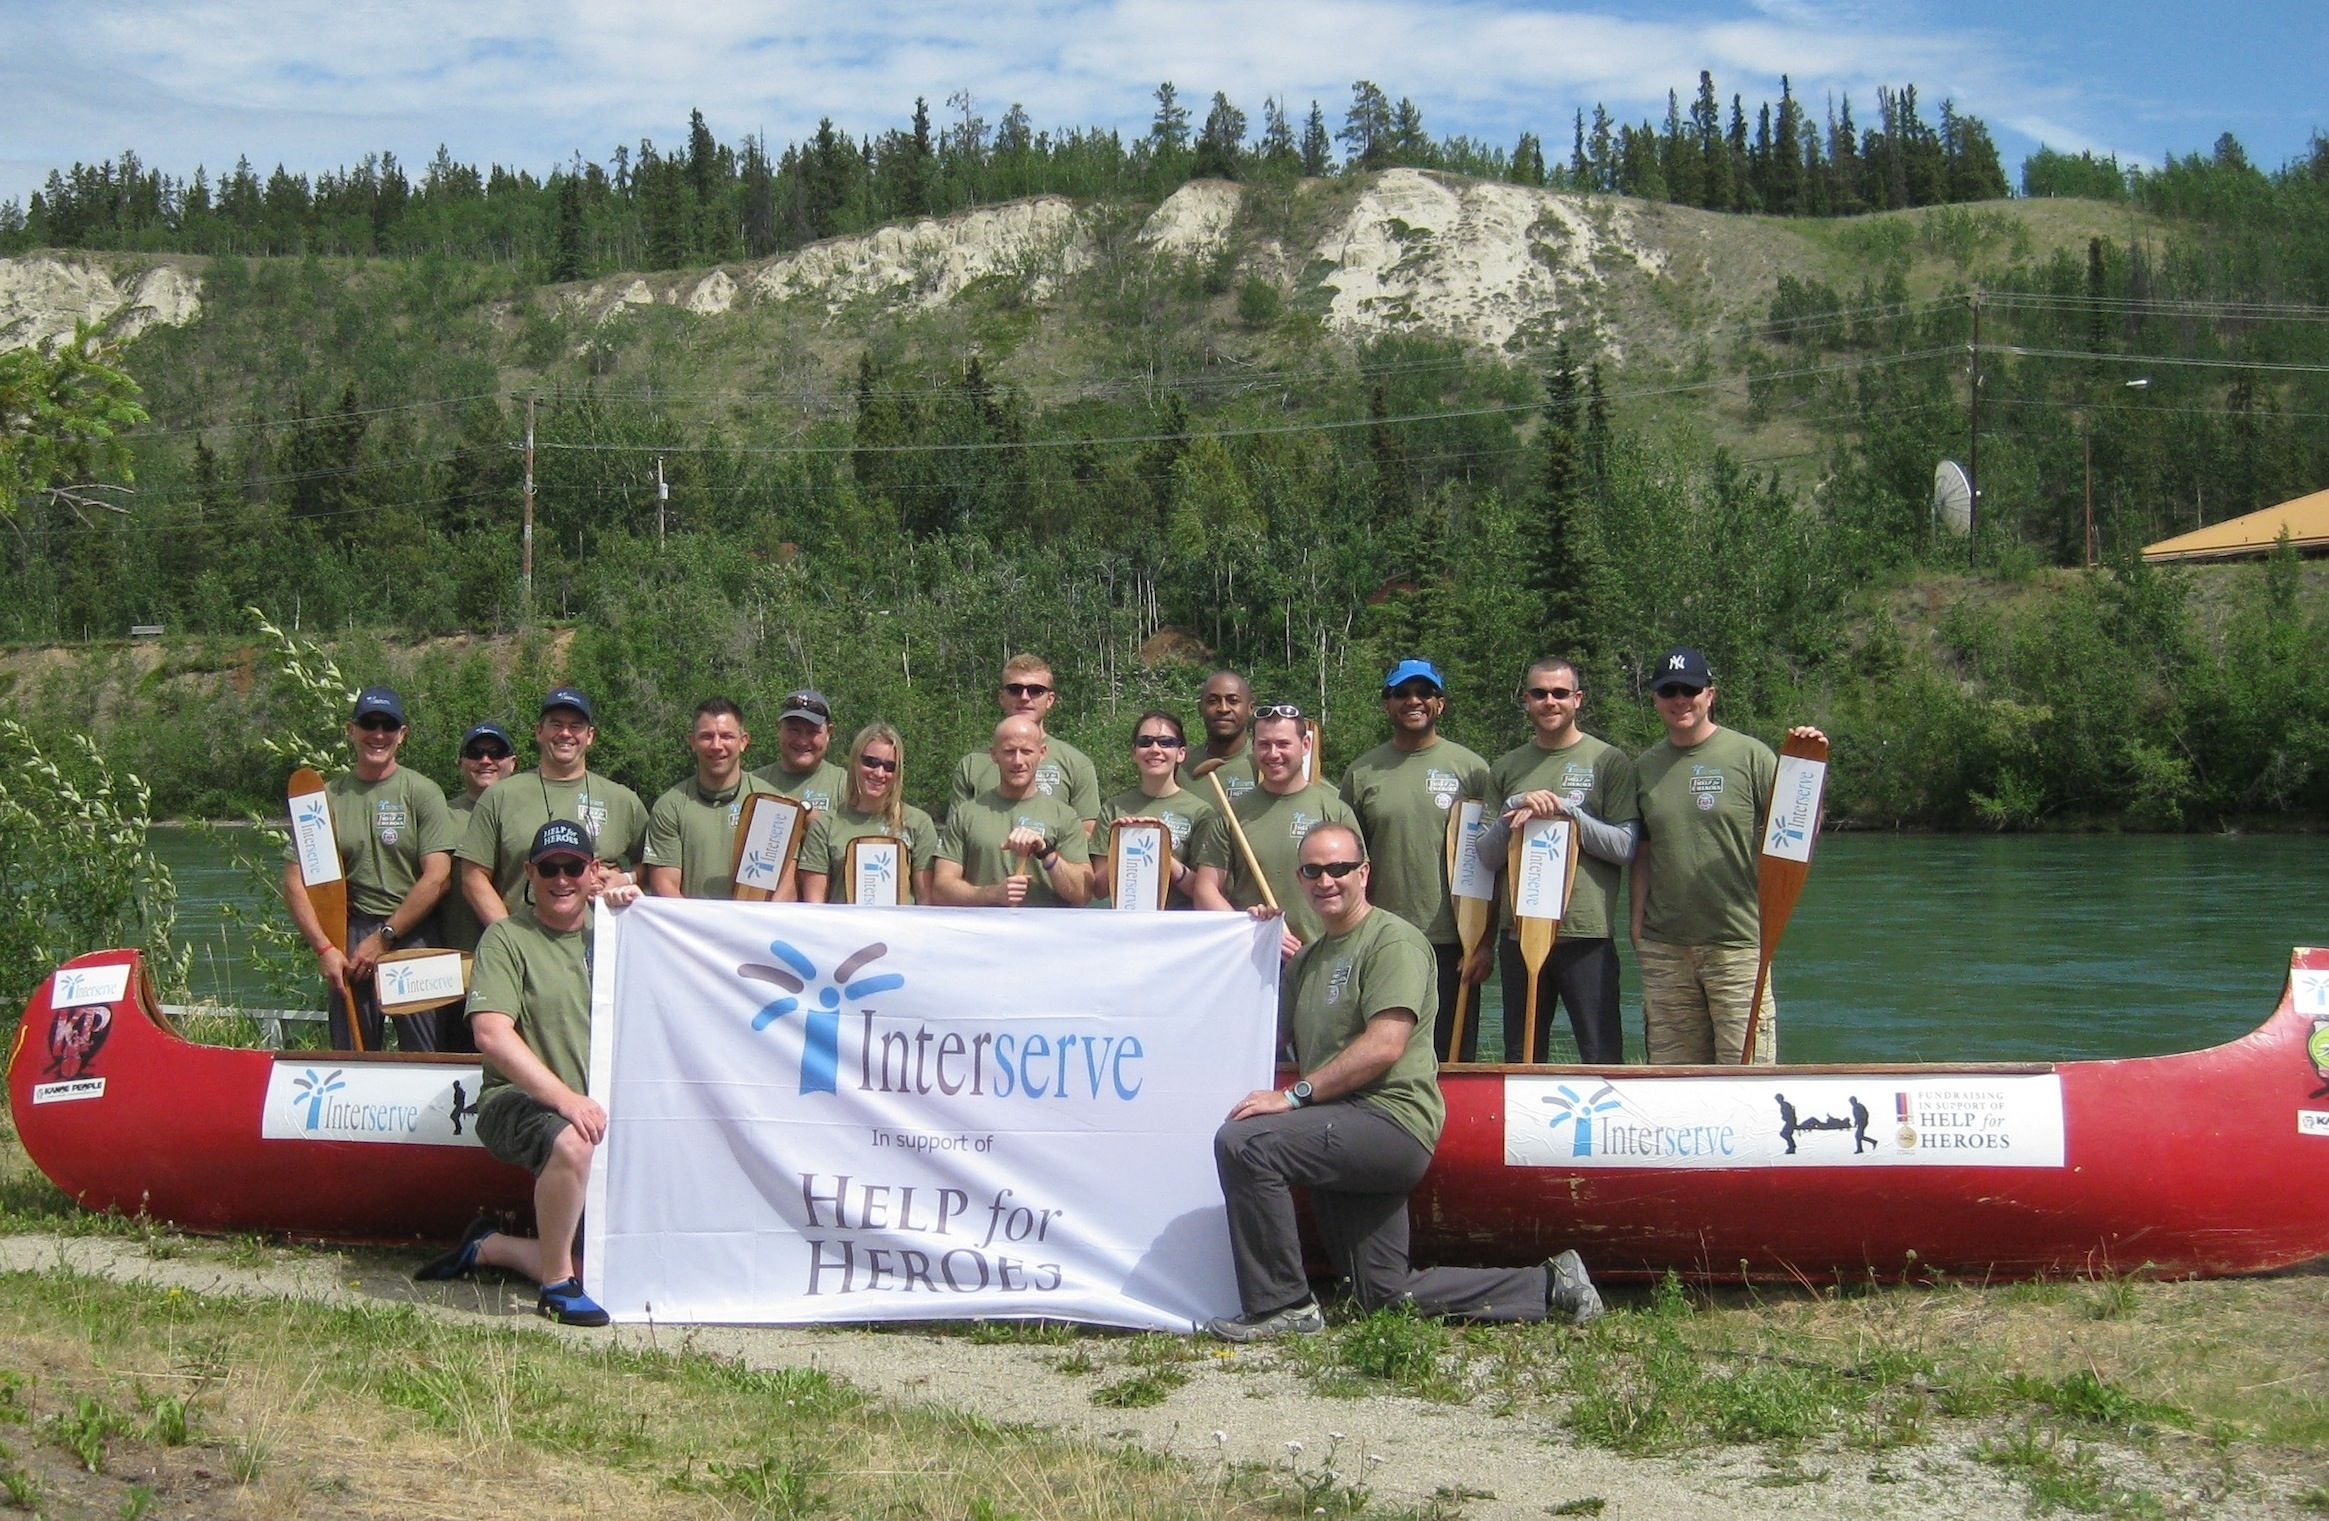 Interserve Update: INTERSERVE BEATS HELP FOR HEROES RIVER QUEST CHARITY